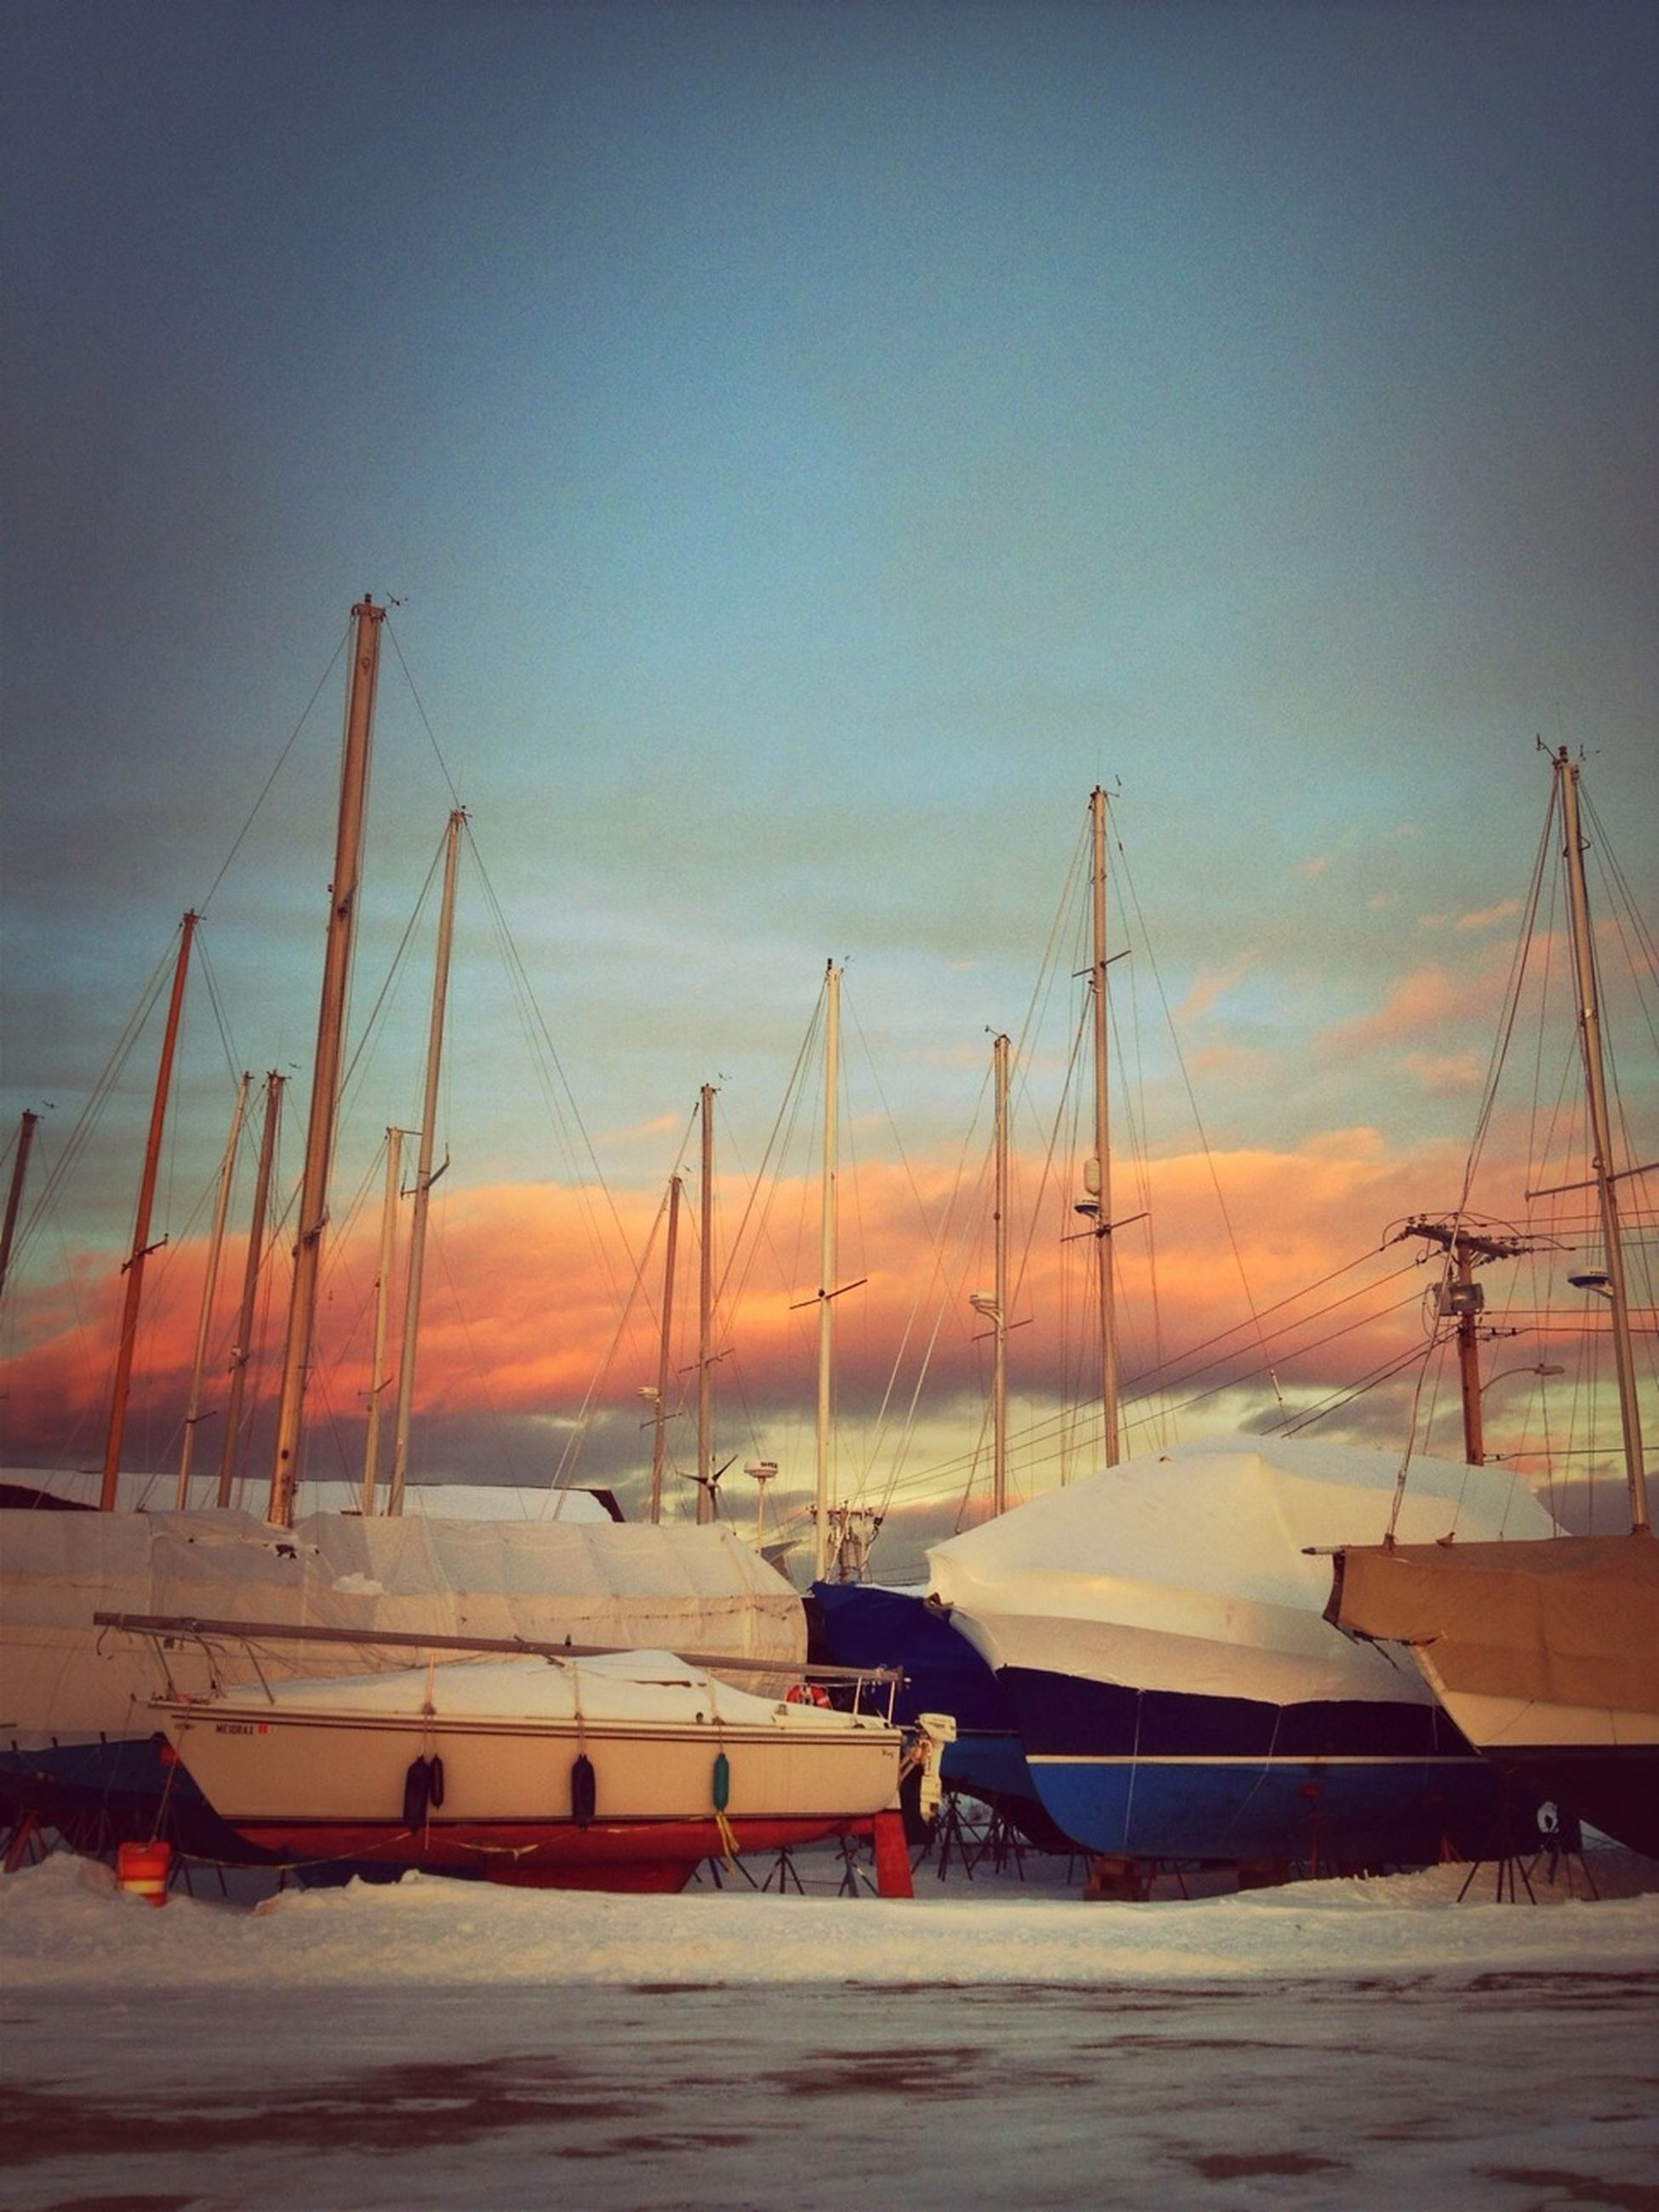 nautical vessel, transportation, moored, boat, mode of transport, sunset, mast, harbor, water, sea, sky, sailboat, nature, tranquility, no people, tranquil scene, orange color, outdoors, commercial dock, beauty in nature